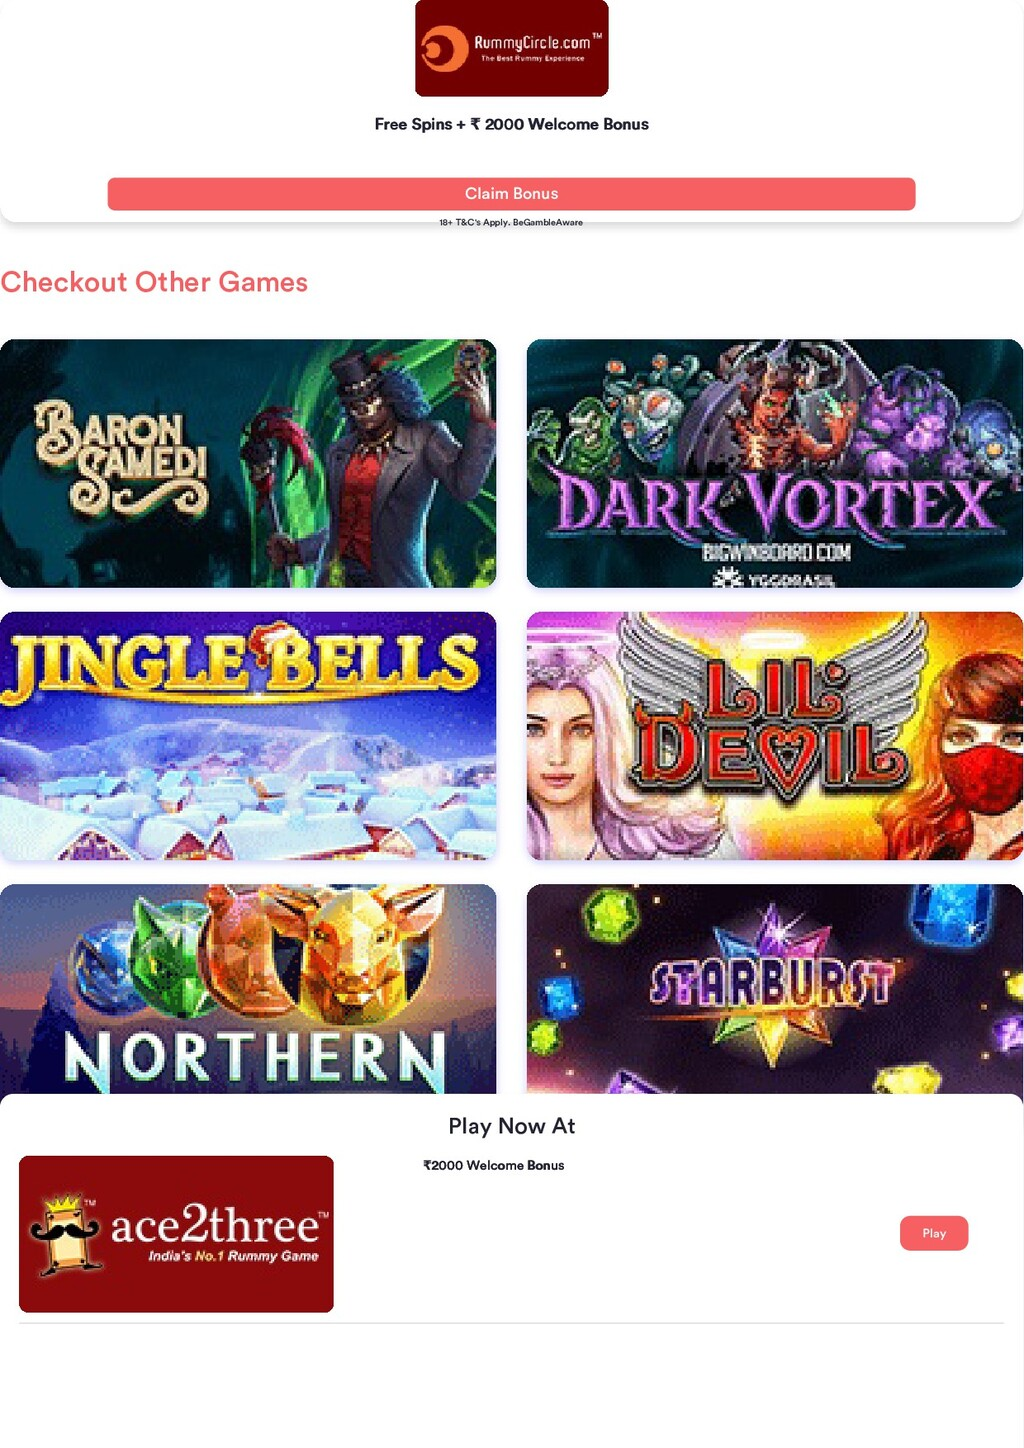 Checkout Other Games Free Spins + Free Spins + ...